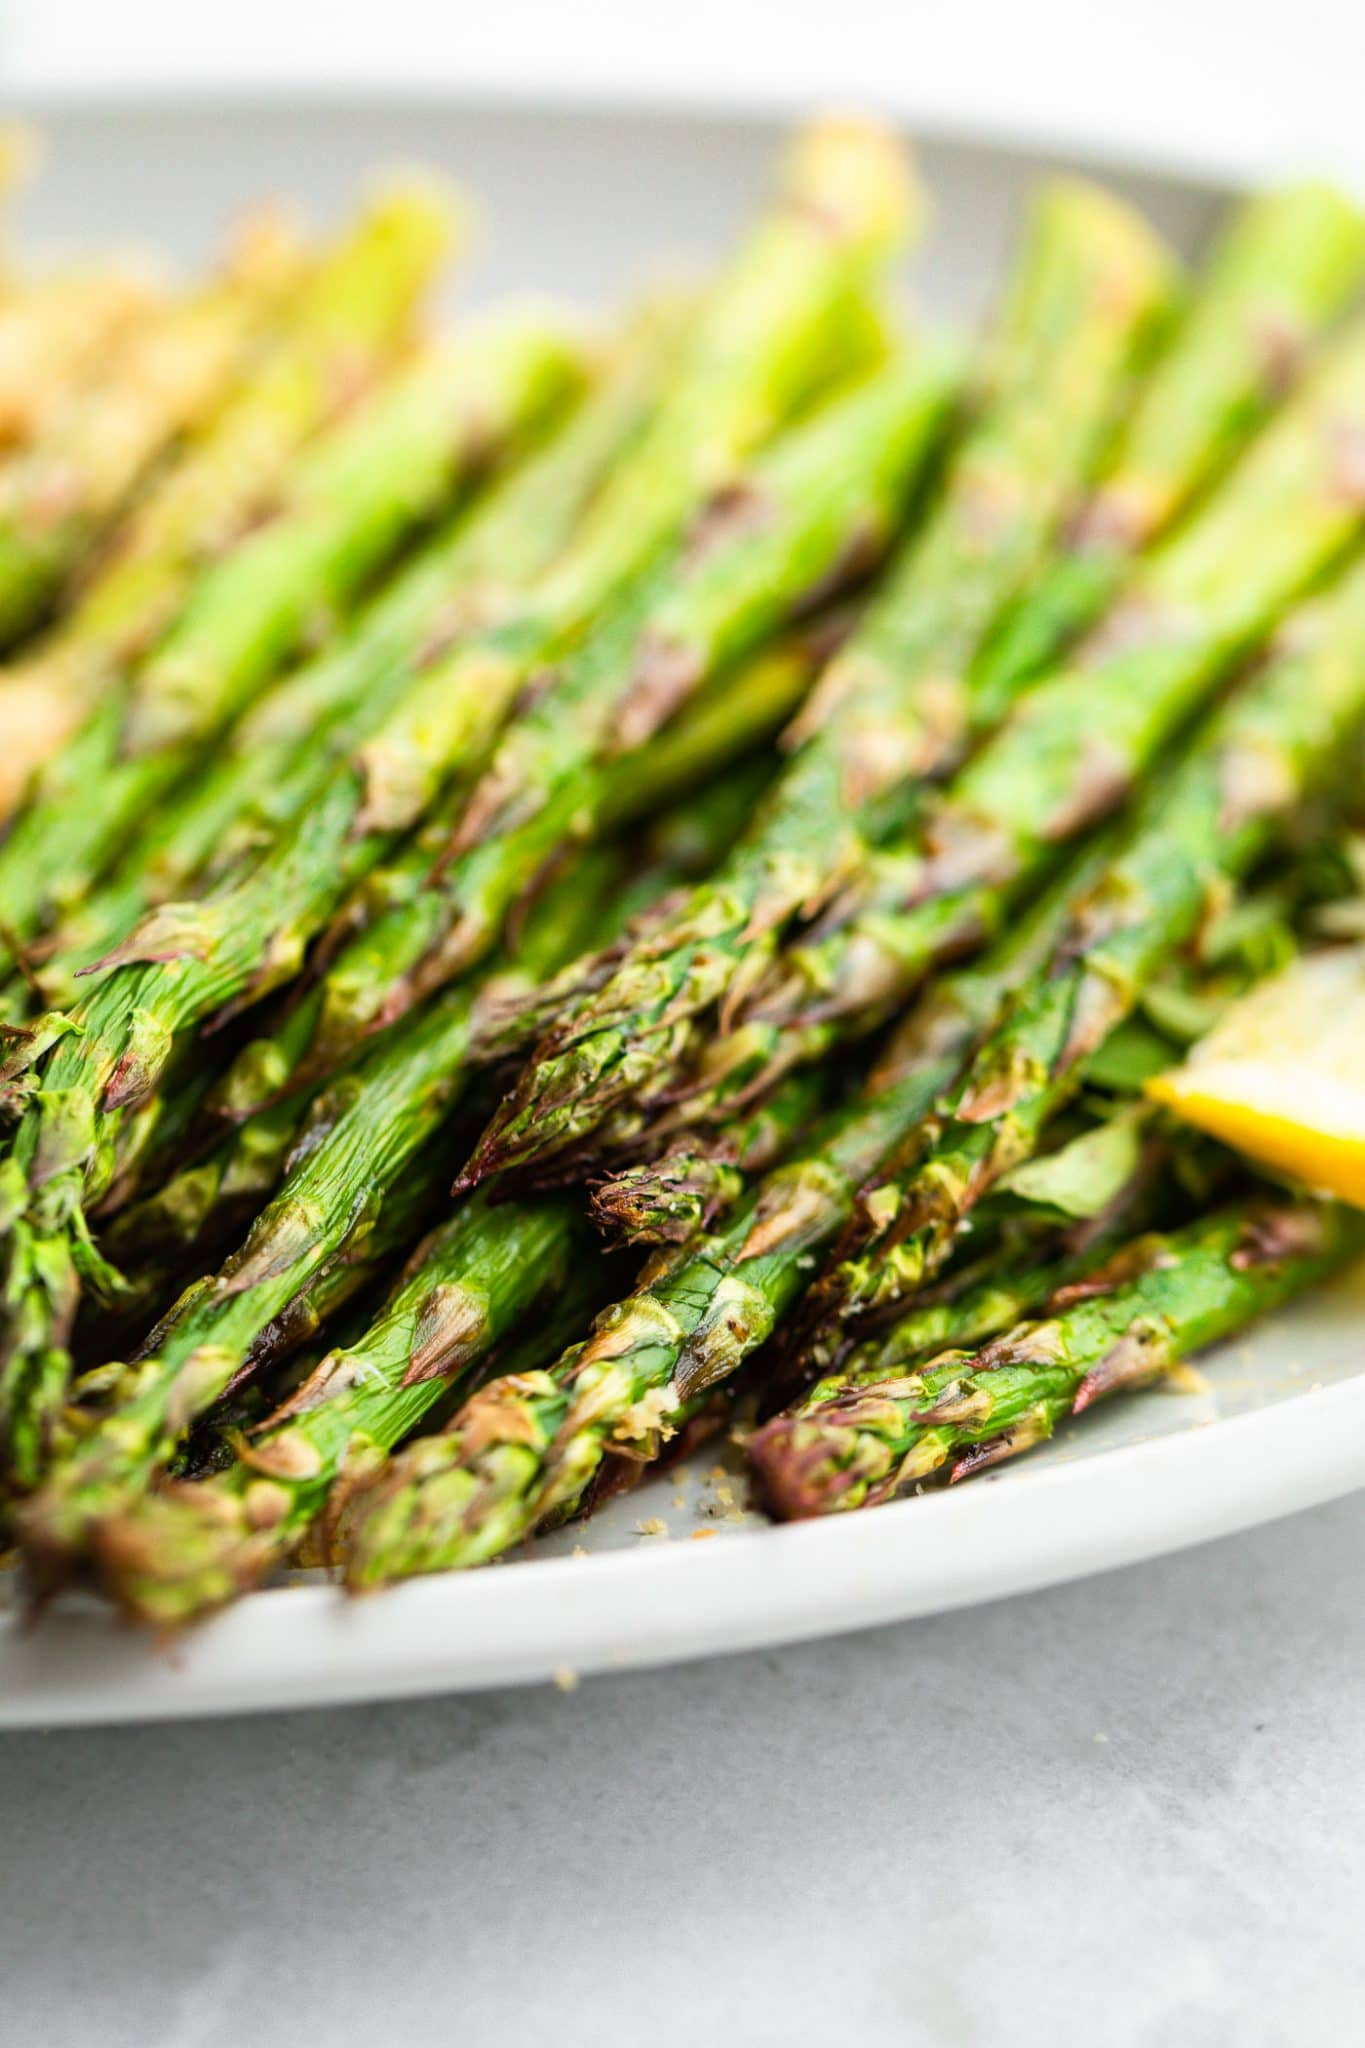 Side close up image of asparagus spears on a dish.